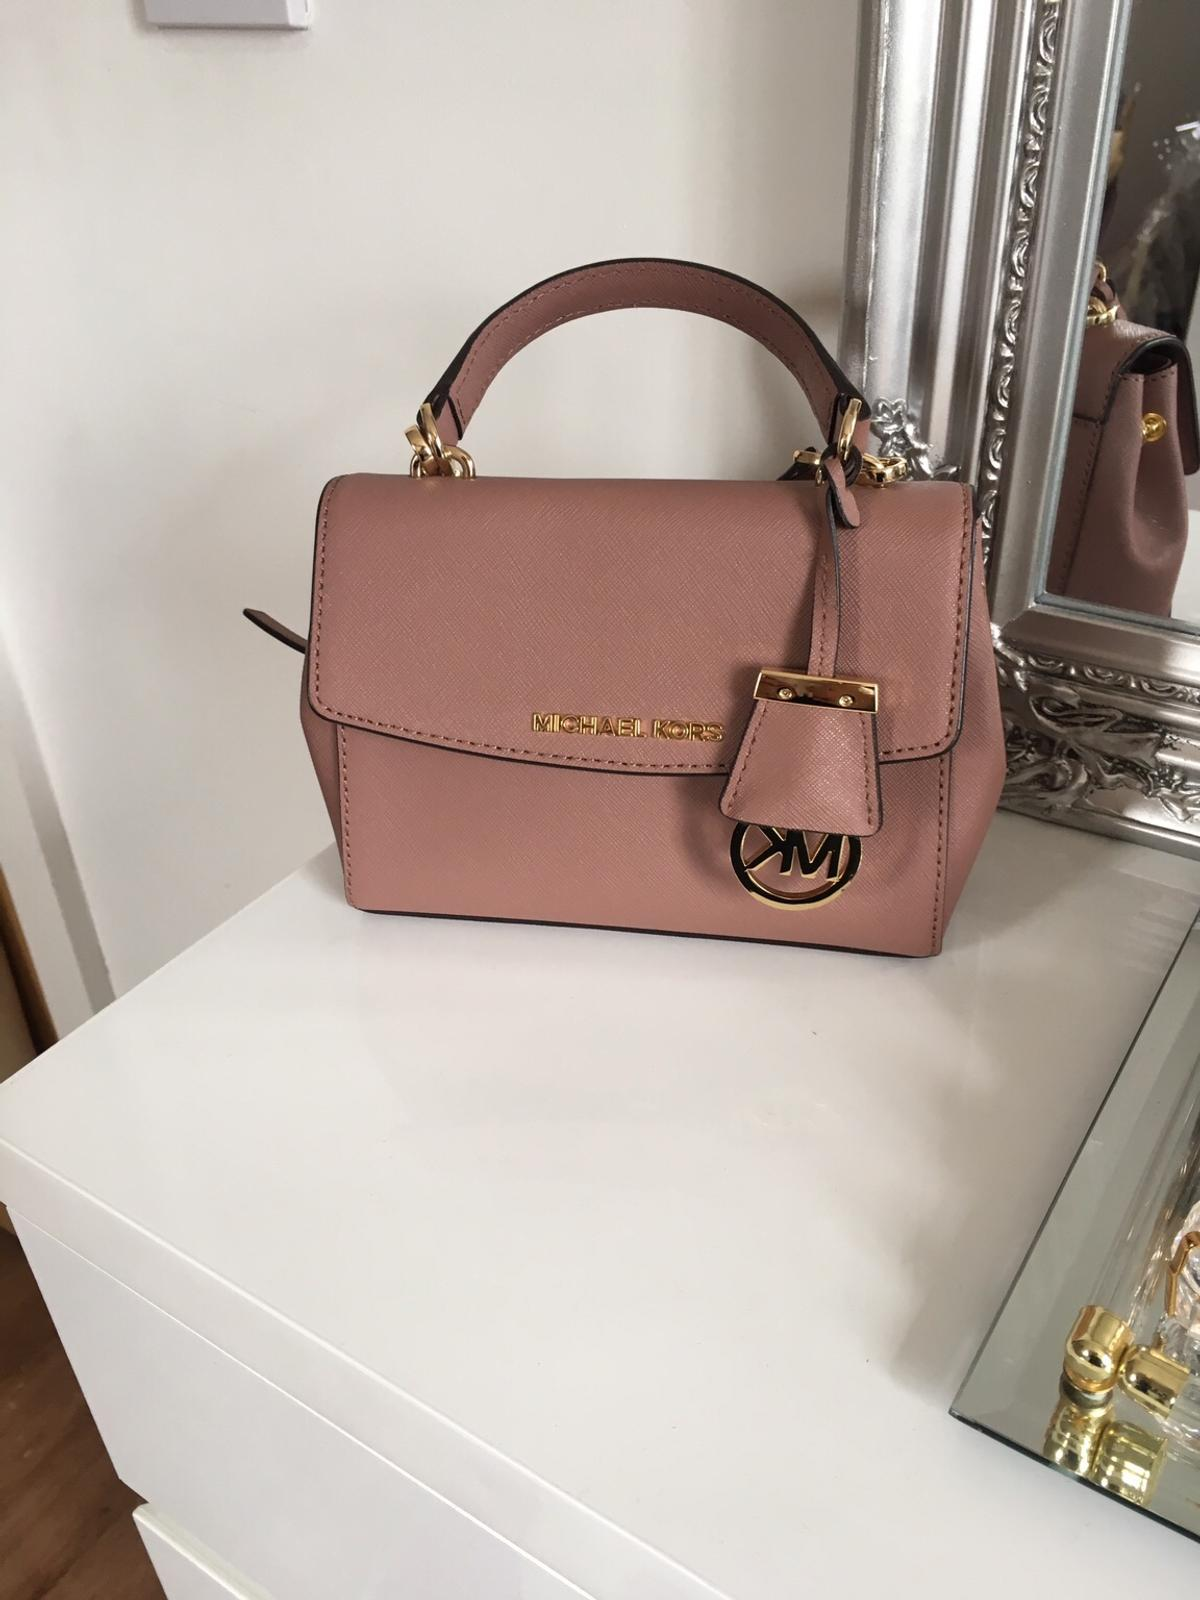 sold worldwide picked up buy Michael kors mini Ava bag in SL2 Court for £75.00 for sale ...